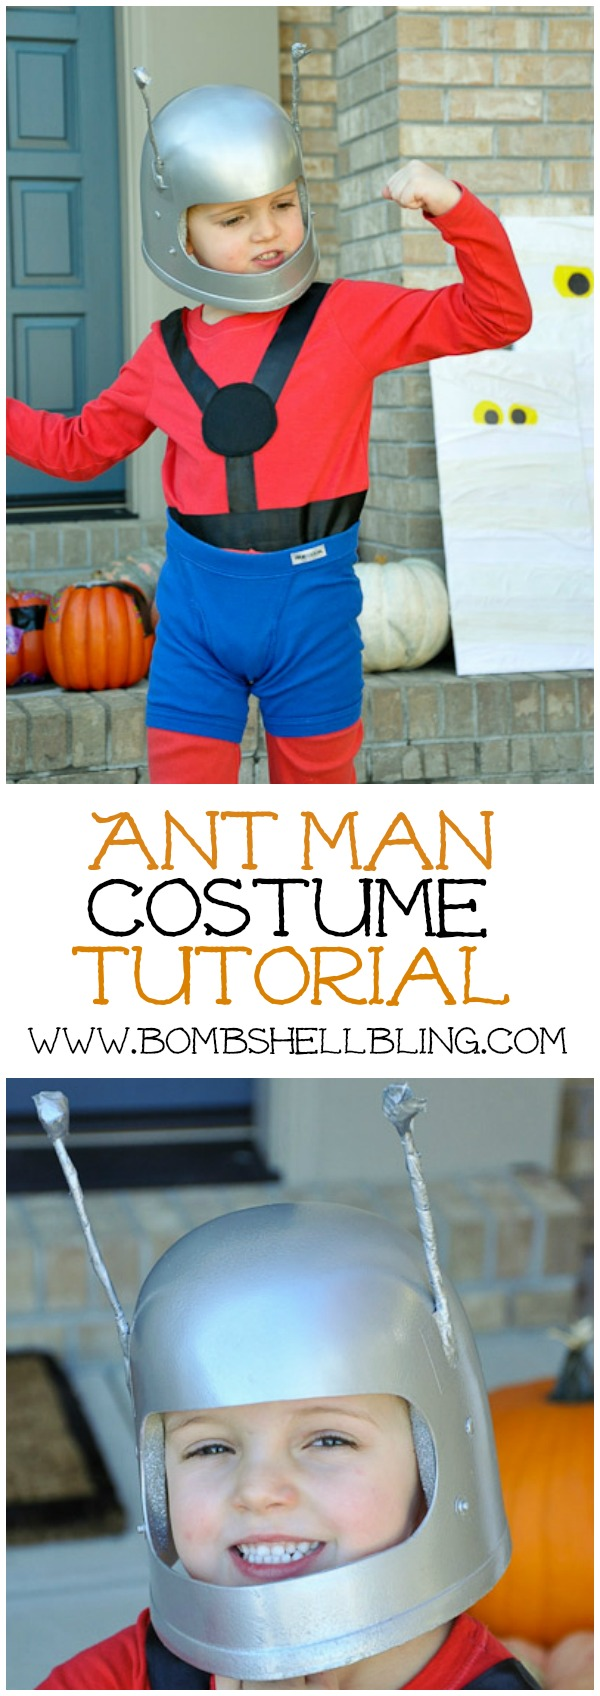 Ant Man Costume Tutorial